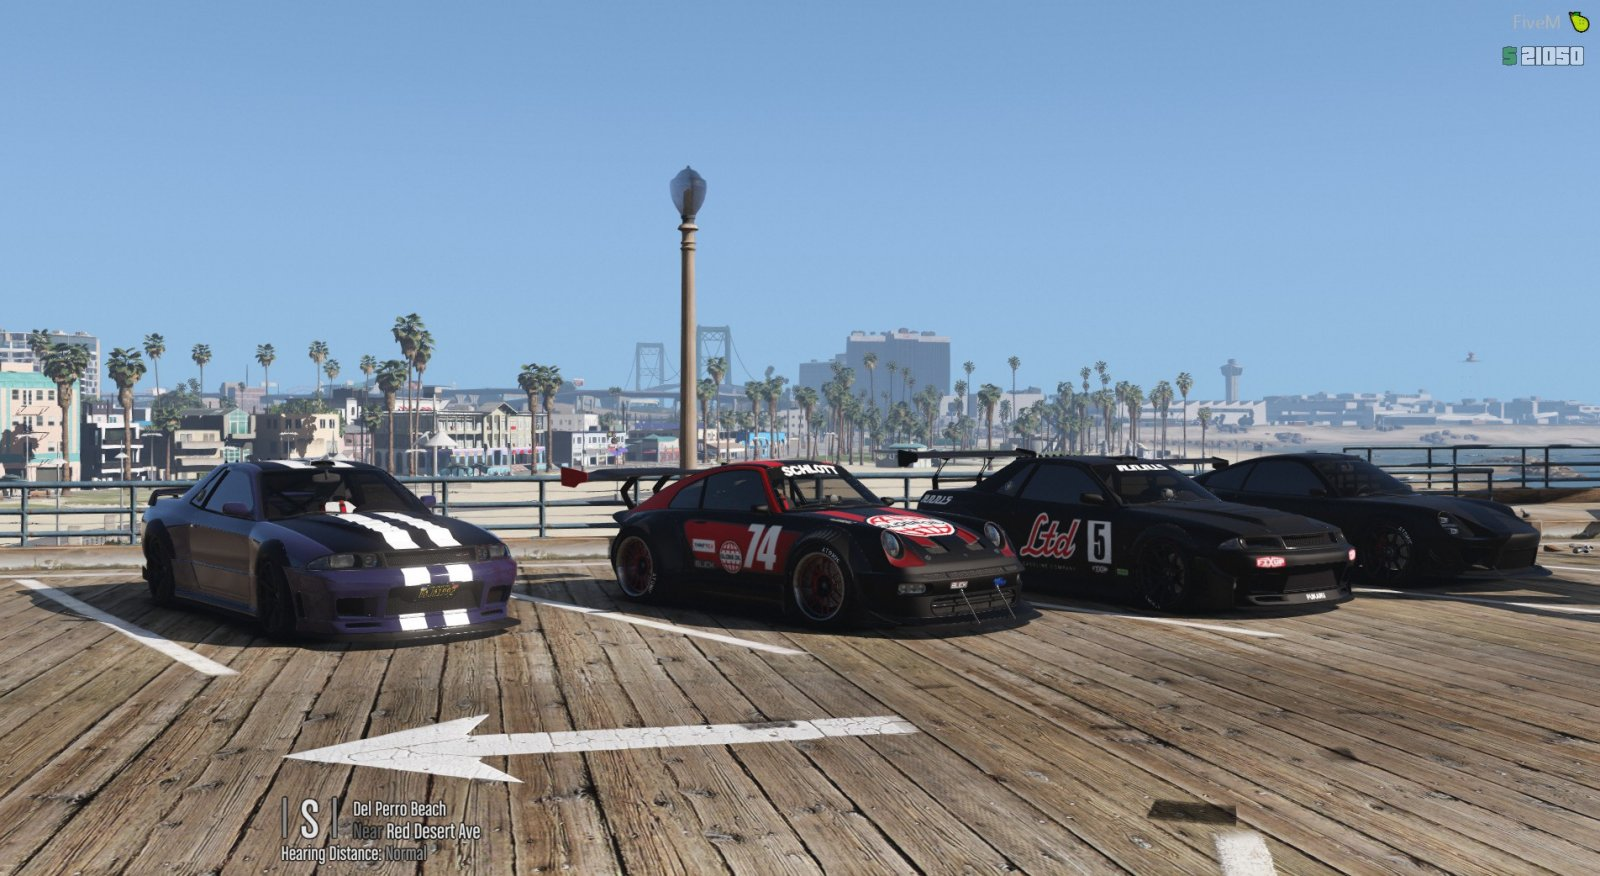 Car meet at Del Perro